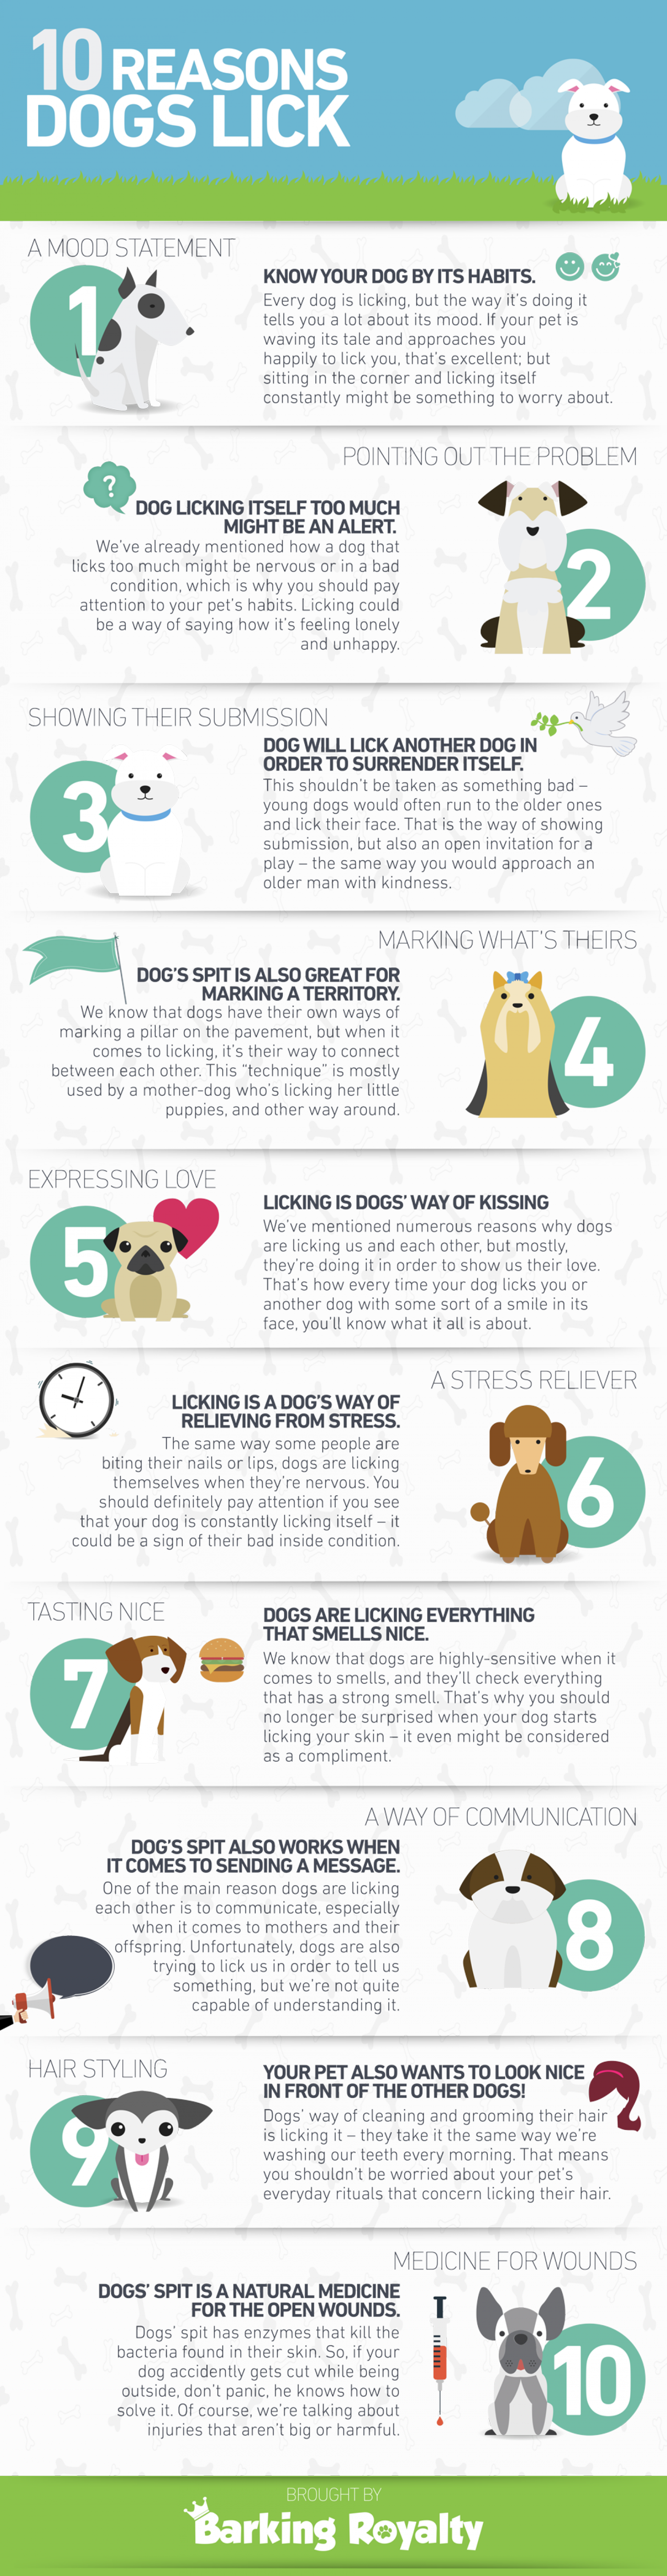 Why do dogs lick? Infographic